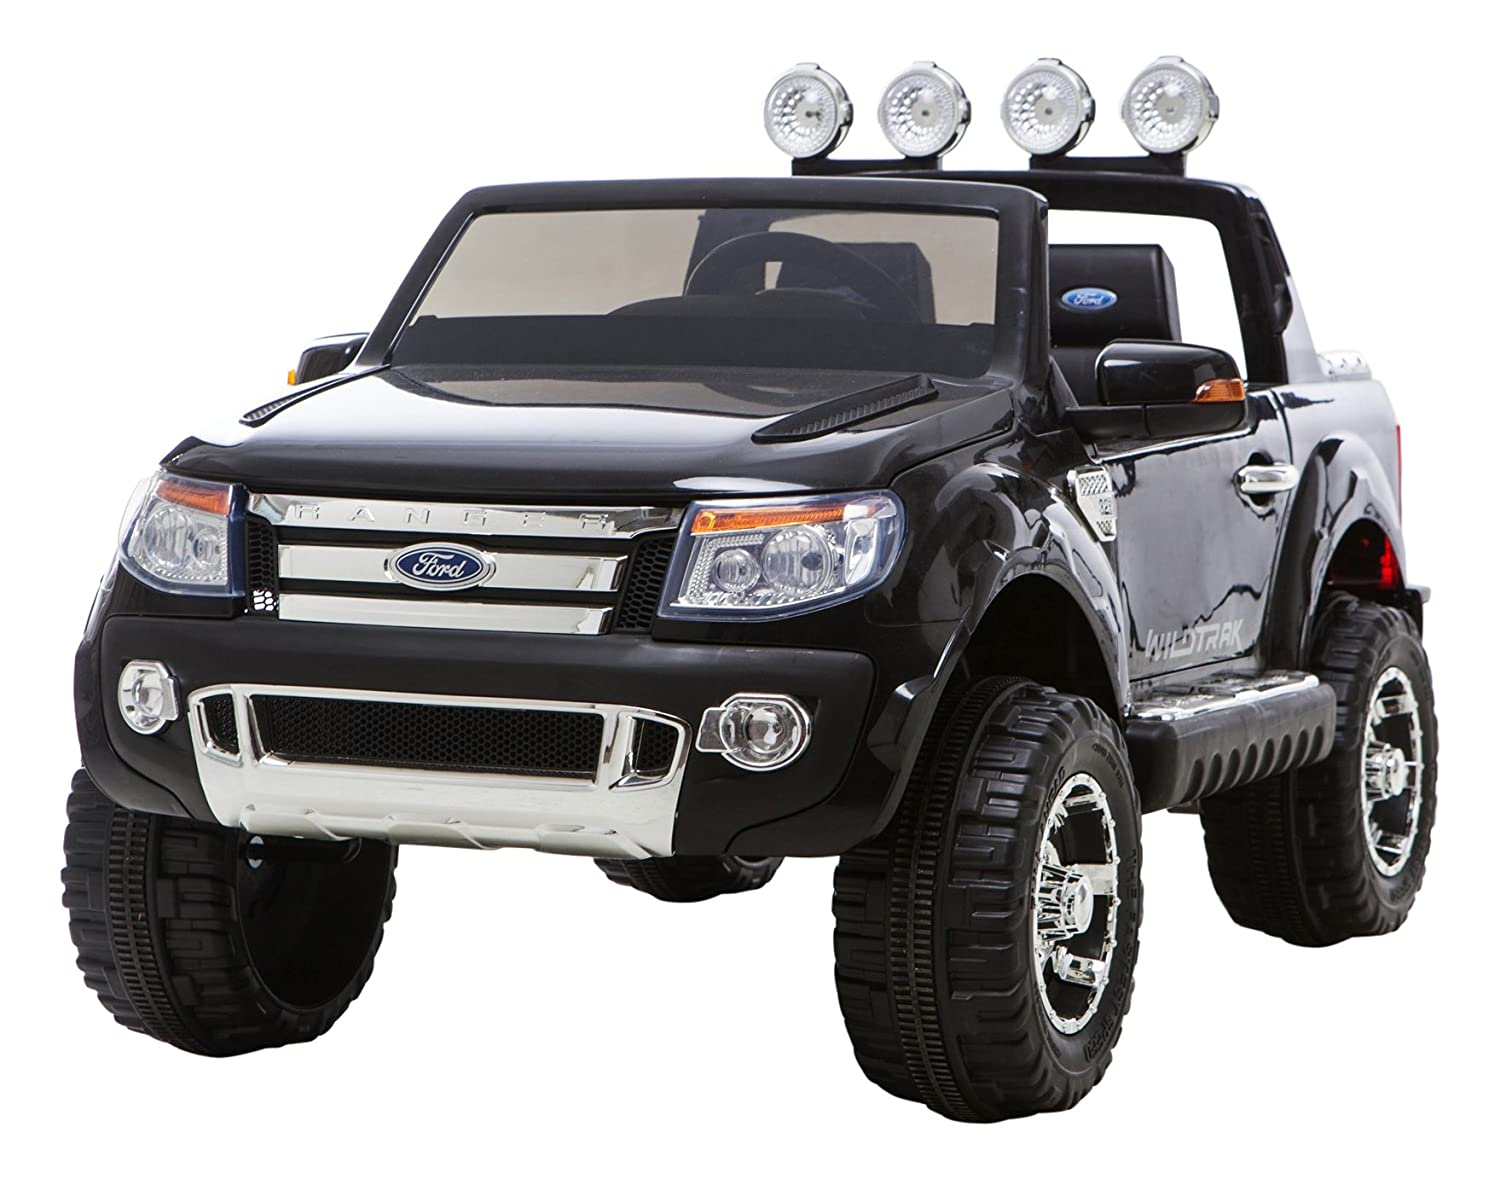 Ricco Licensed Ford Ranger Black 4x4 Kids Ride On Car With Remote Locking Hub Troubleshooting Control Led Lights And Music Toys Games